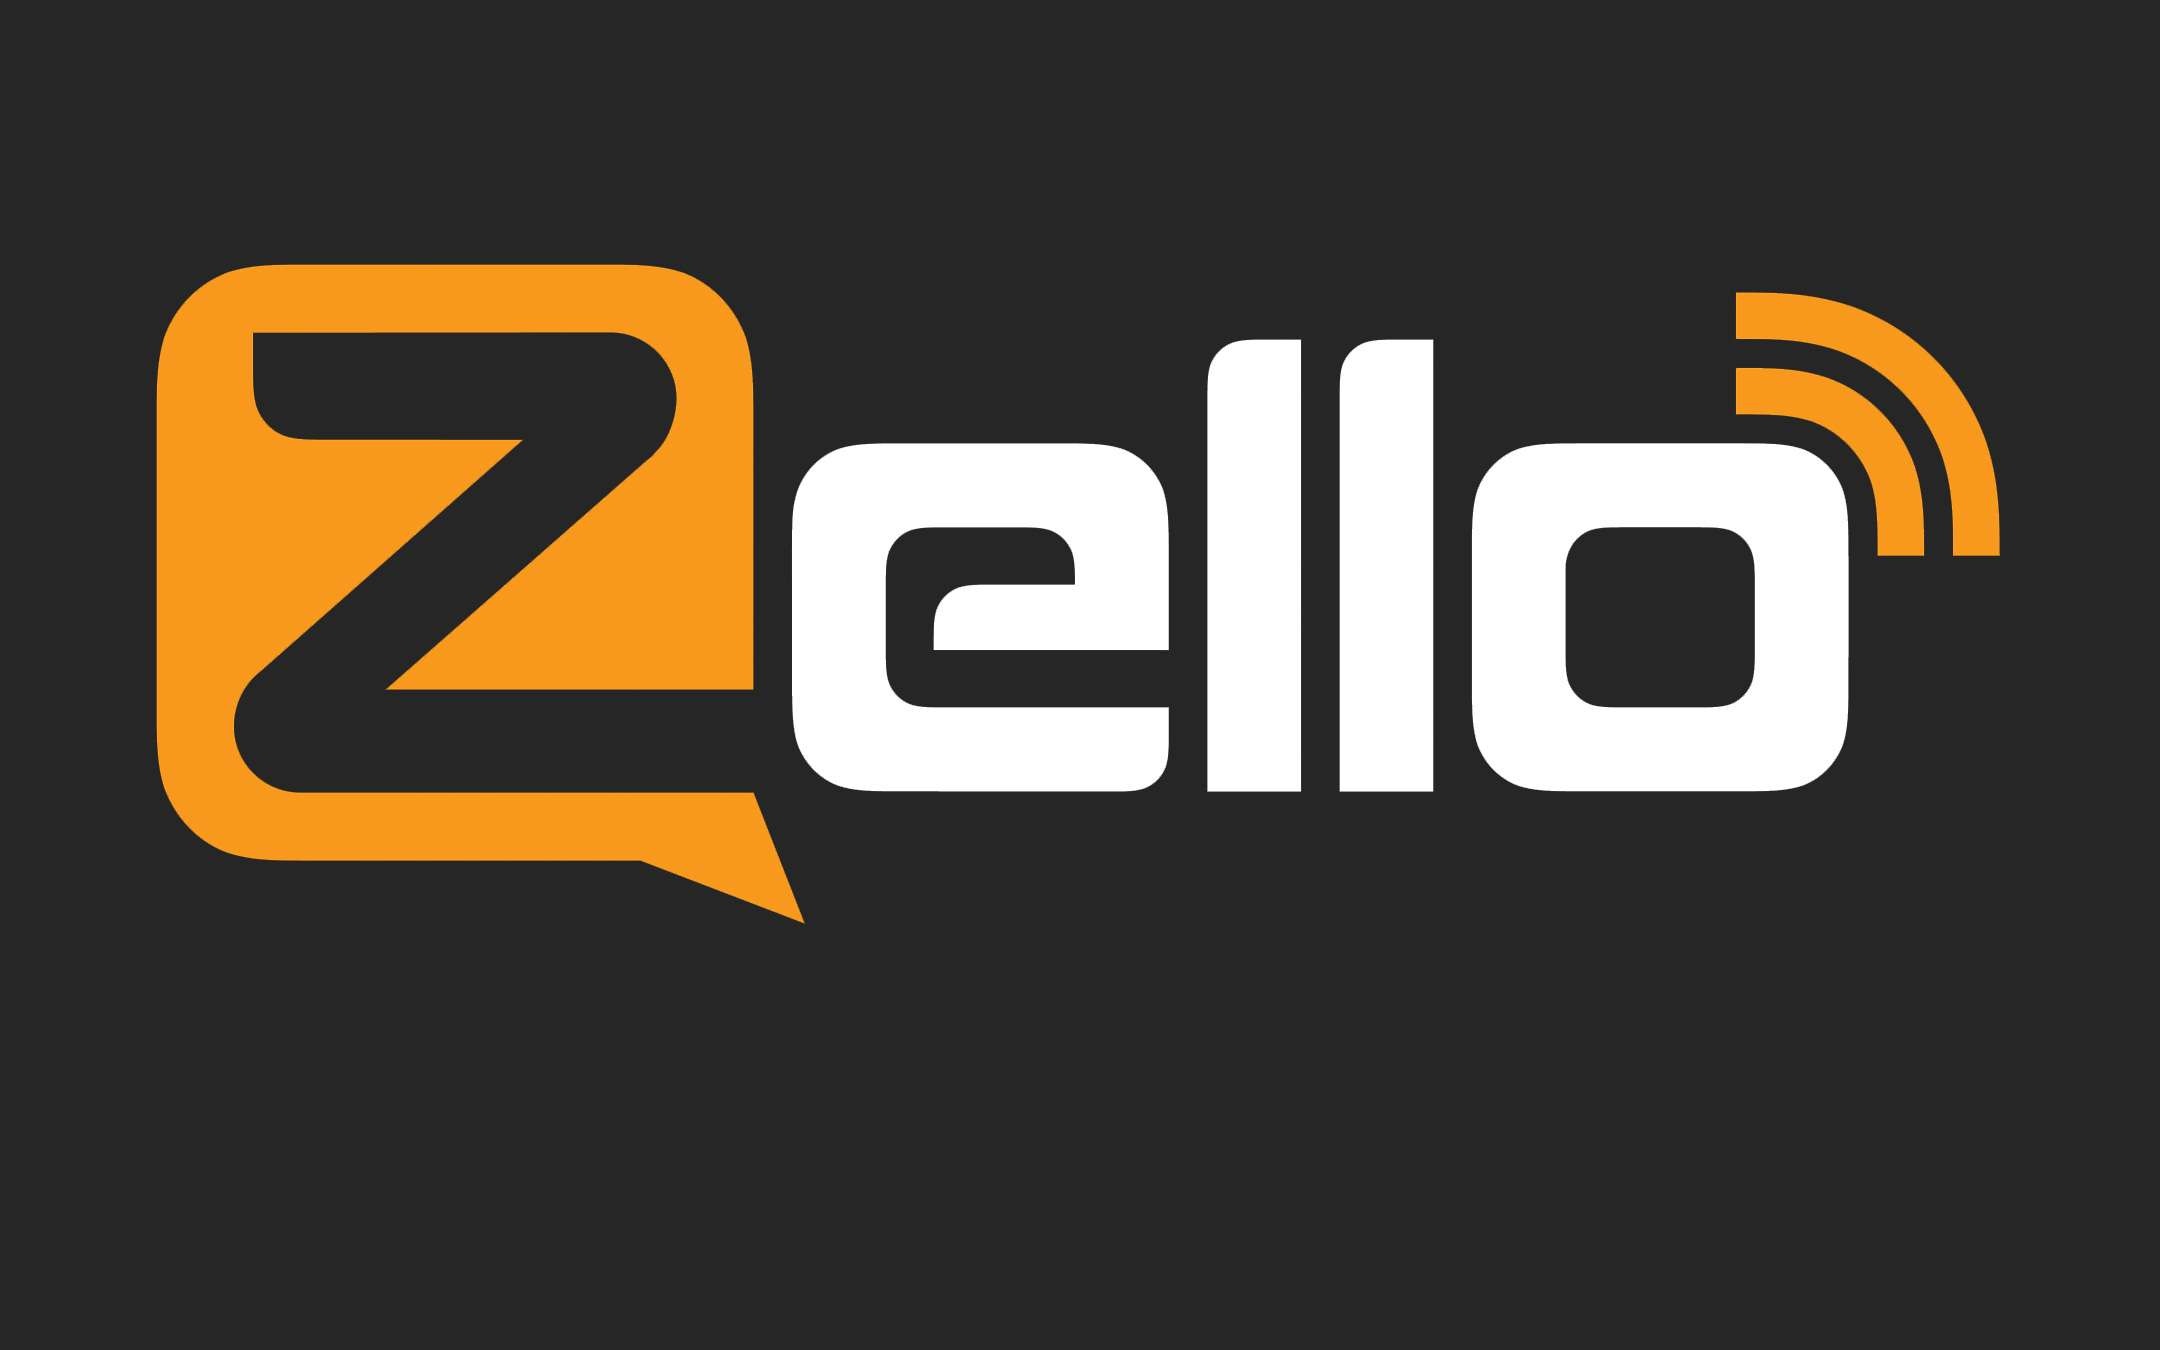 Zello: the app used by the Capitol Hill attackers